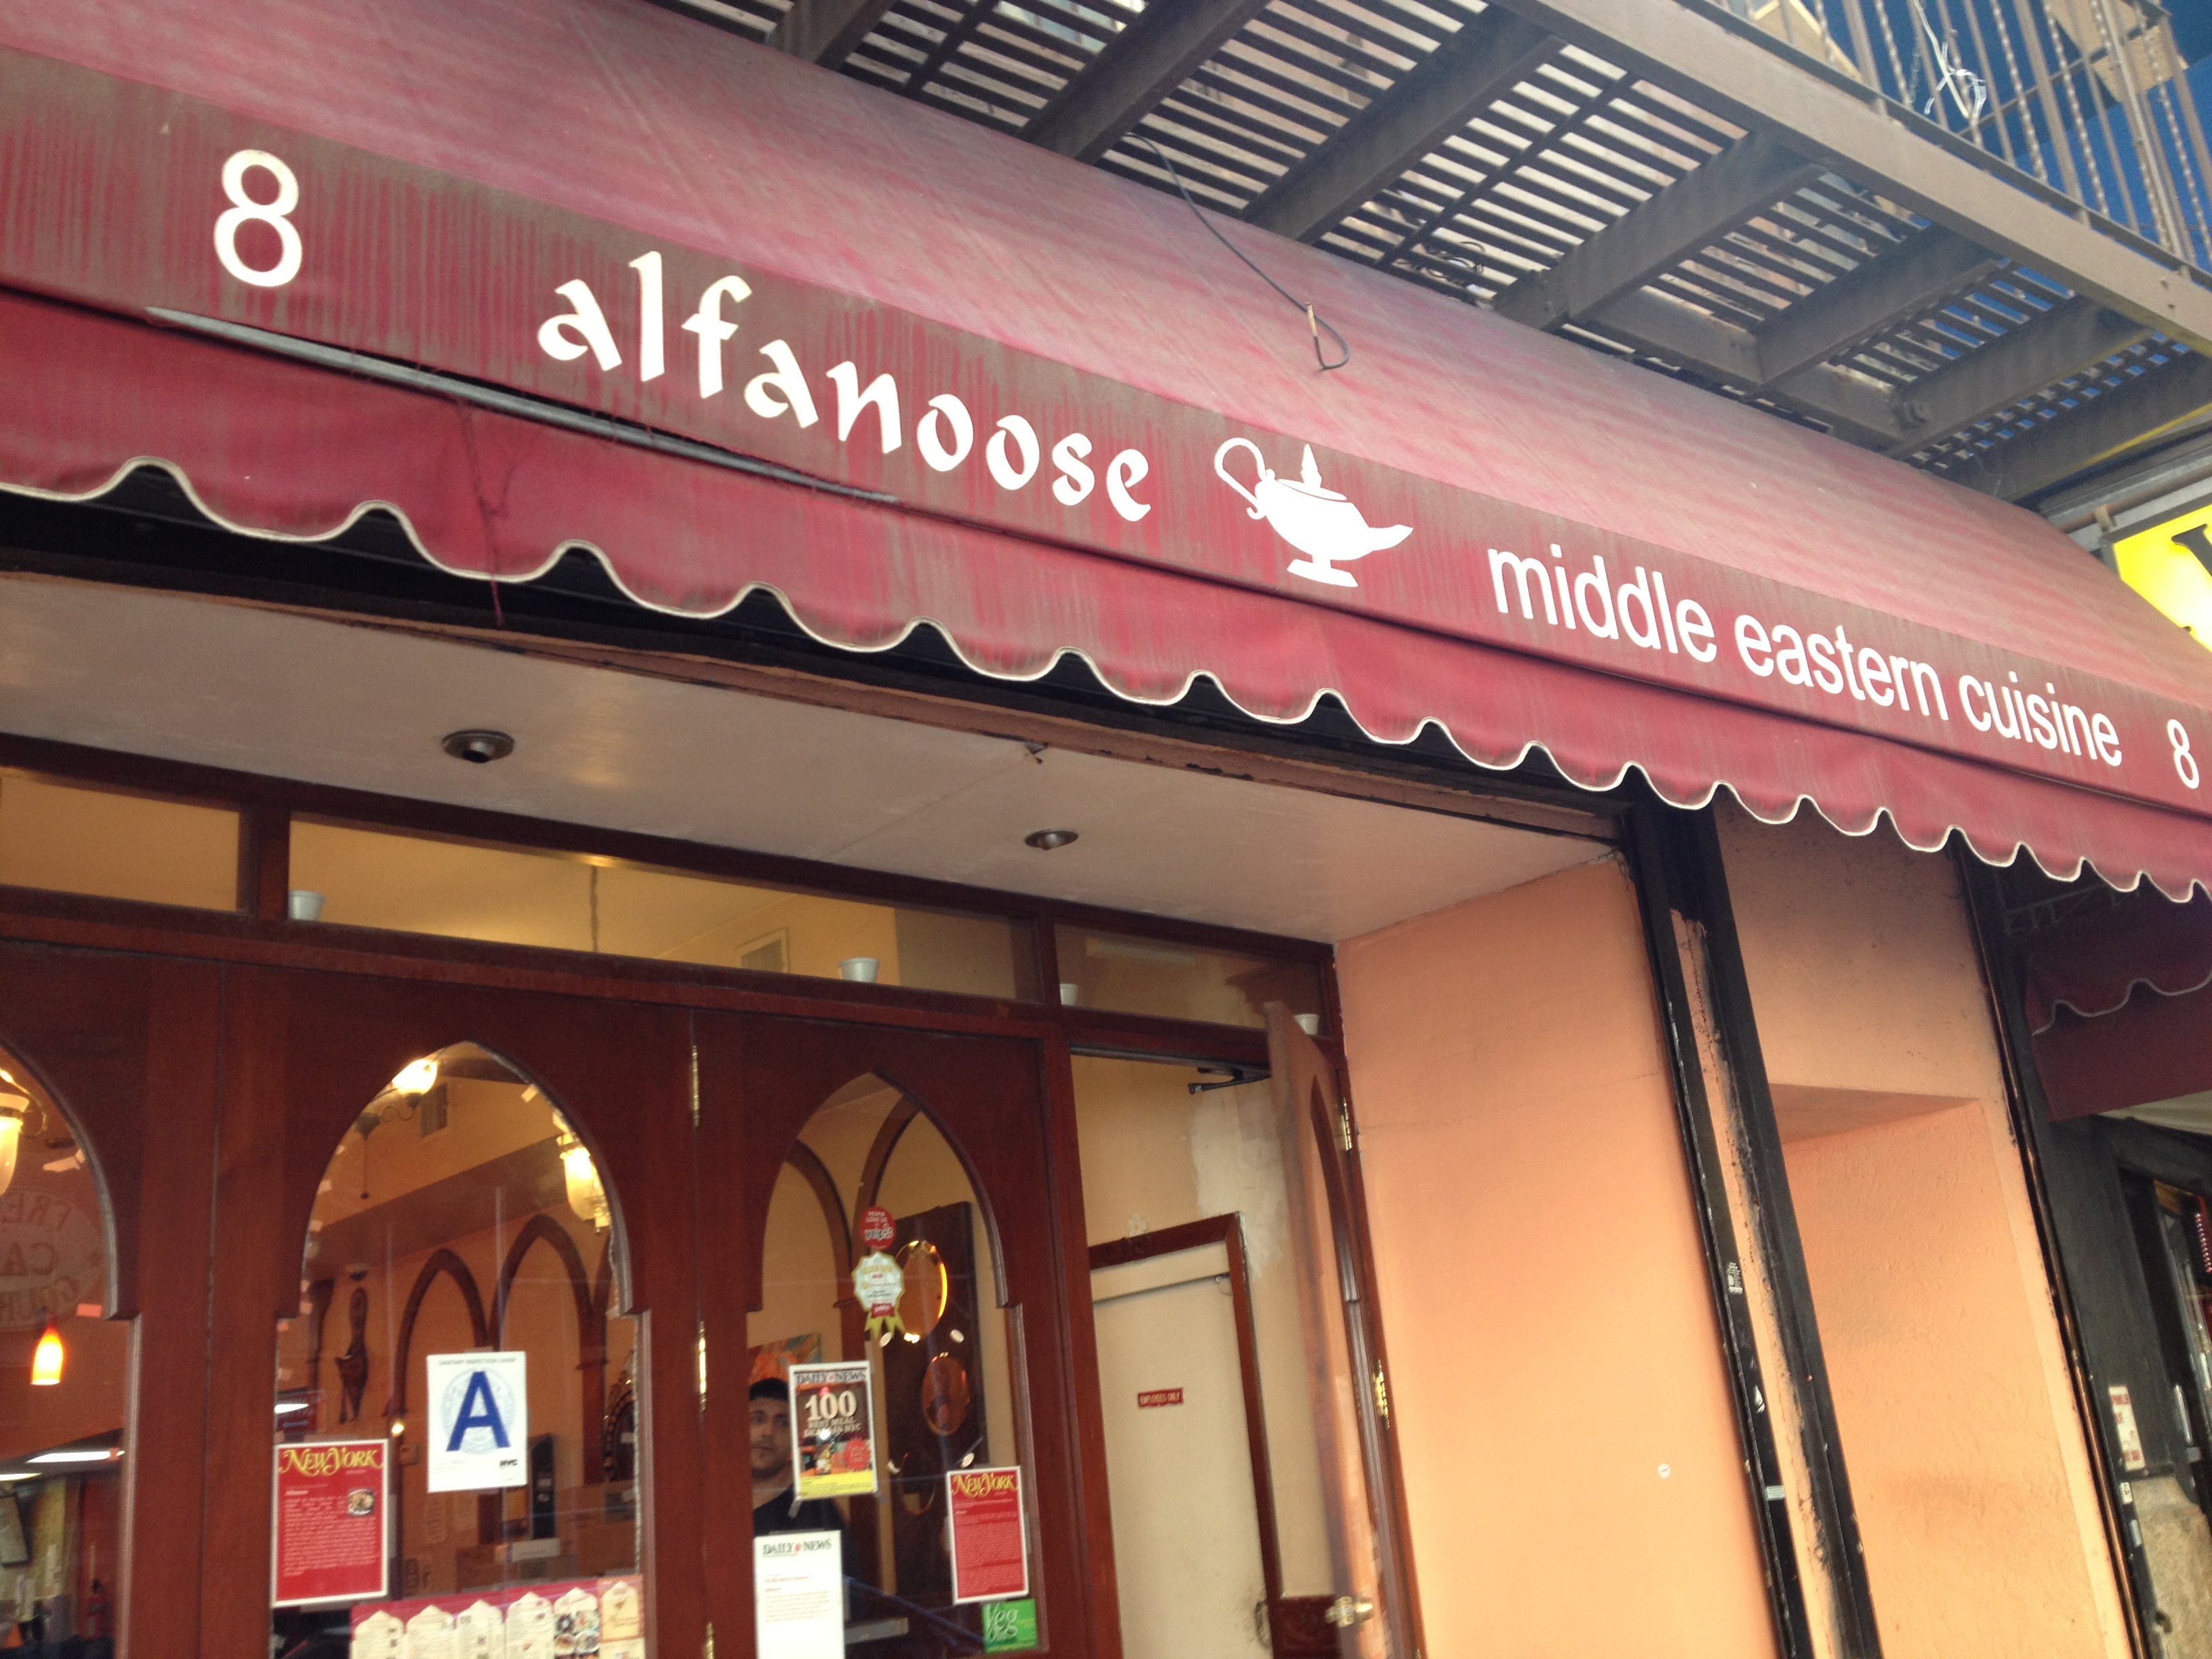 Alfanoose eat this ny for Alfanoose middle eastern cuisine